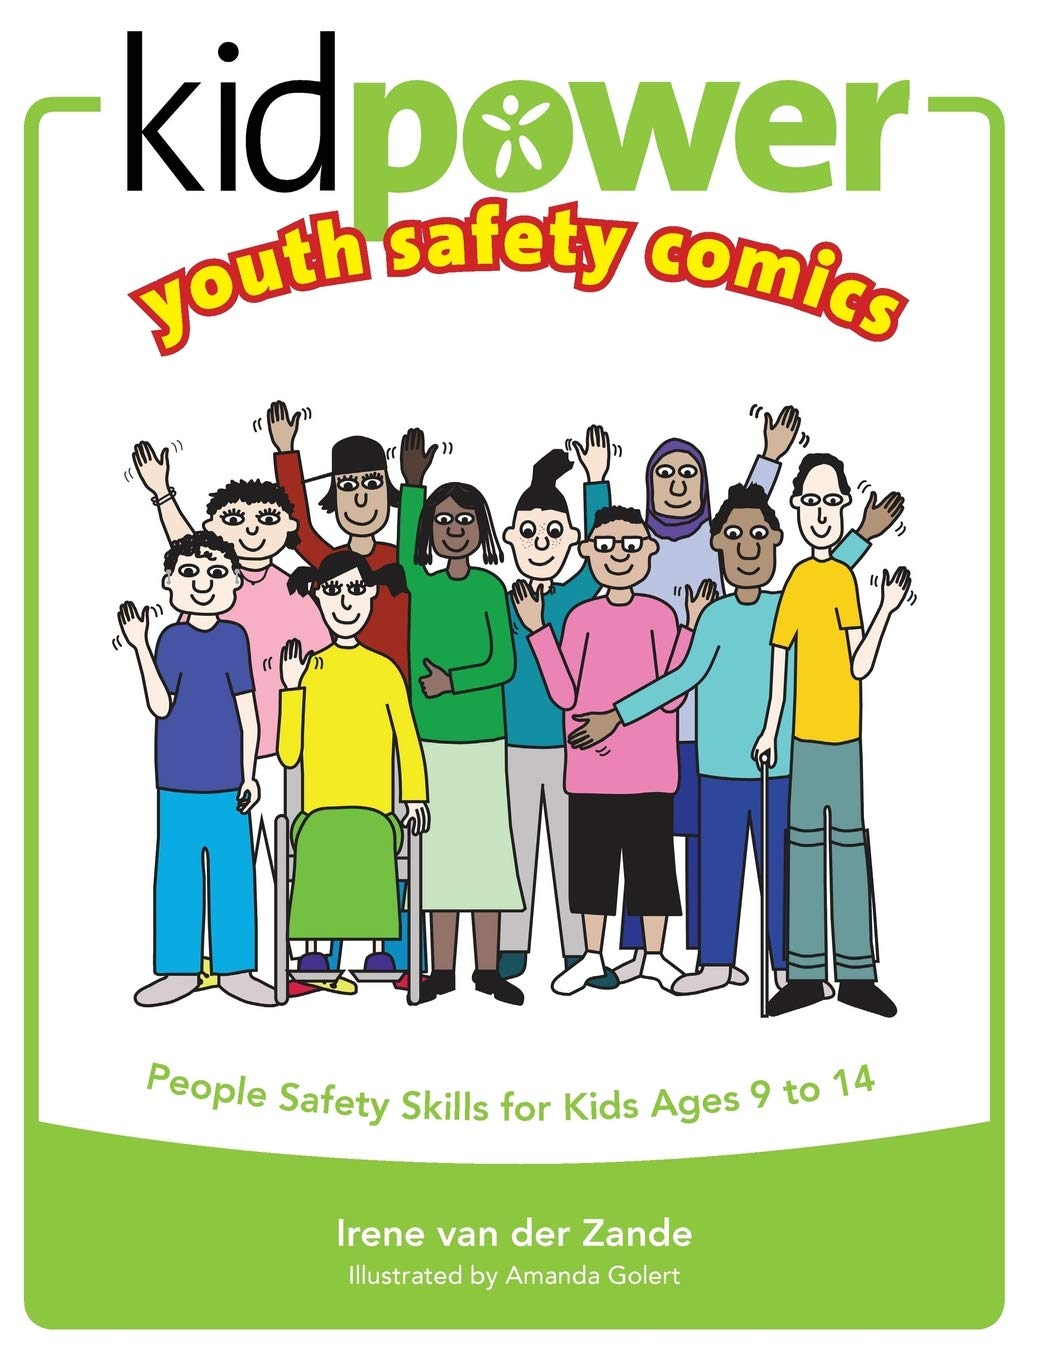 Kidpower Safety Comics People Safety Skills for Children Ages 3-10